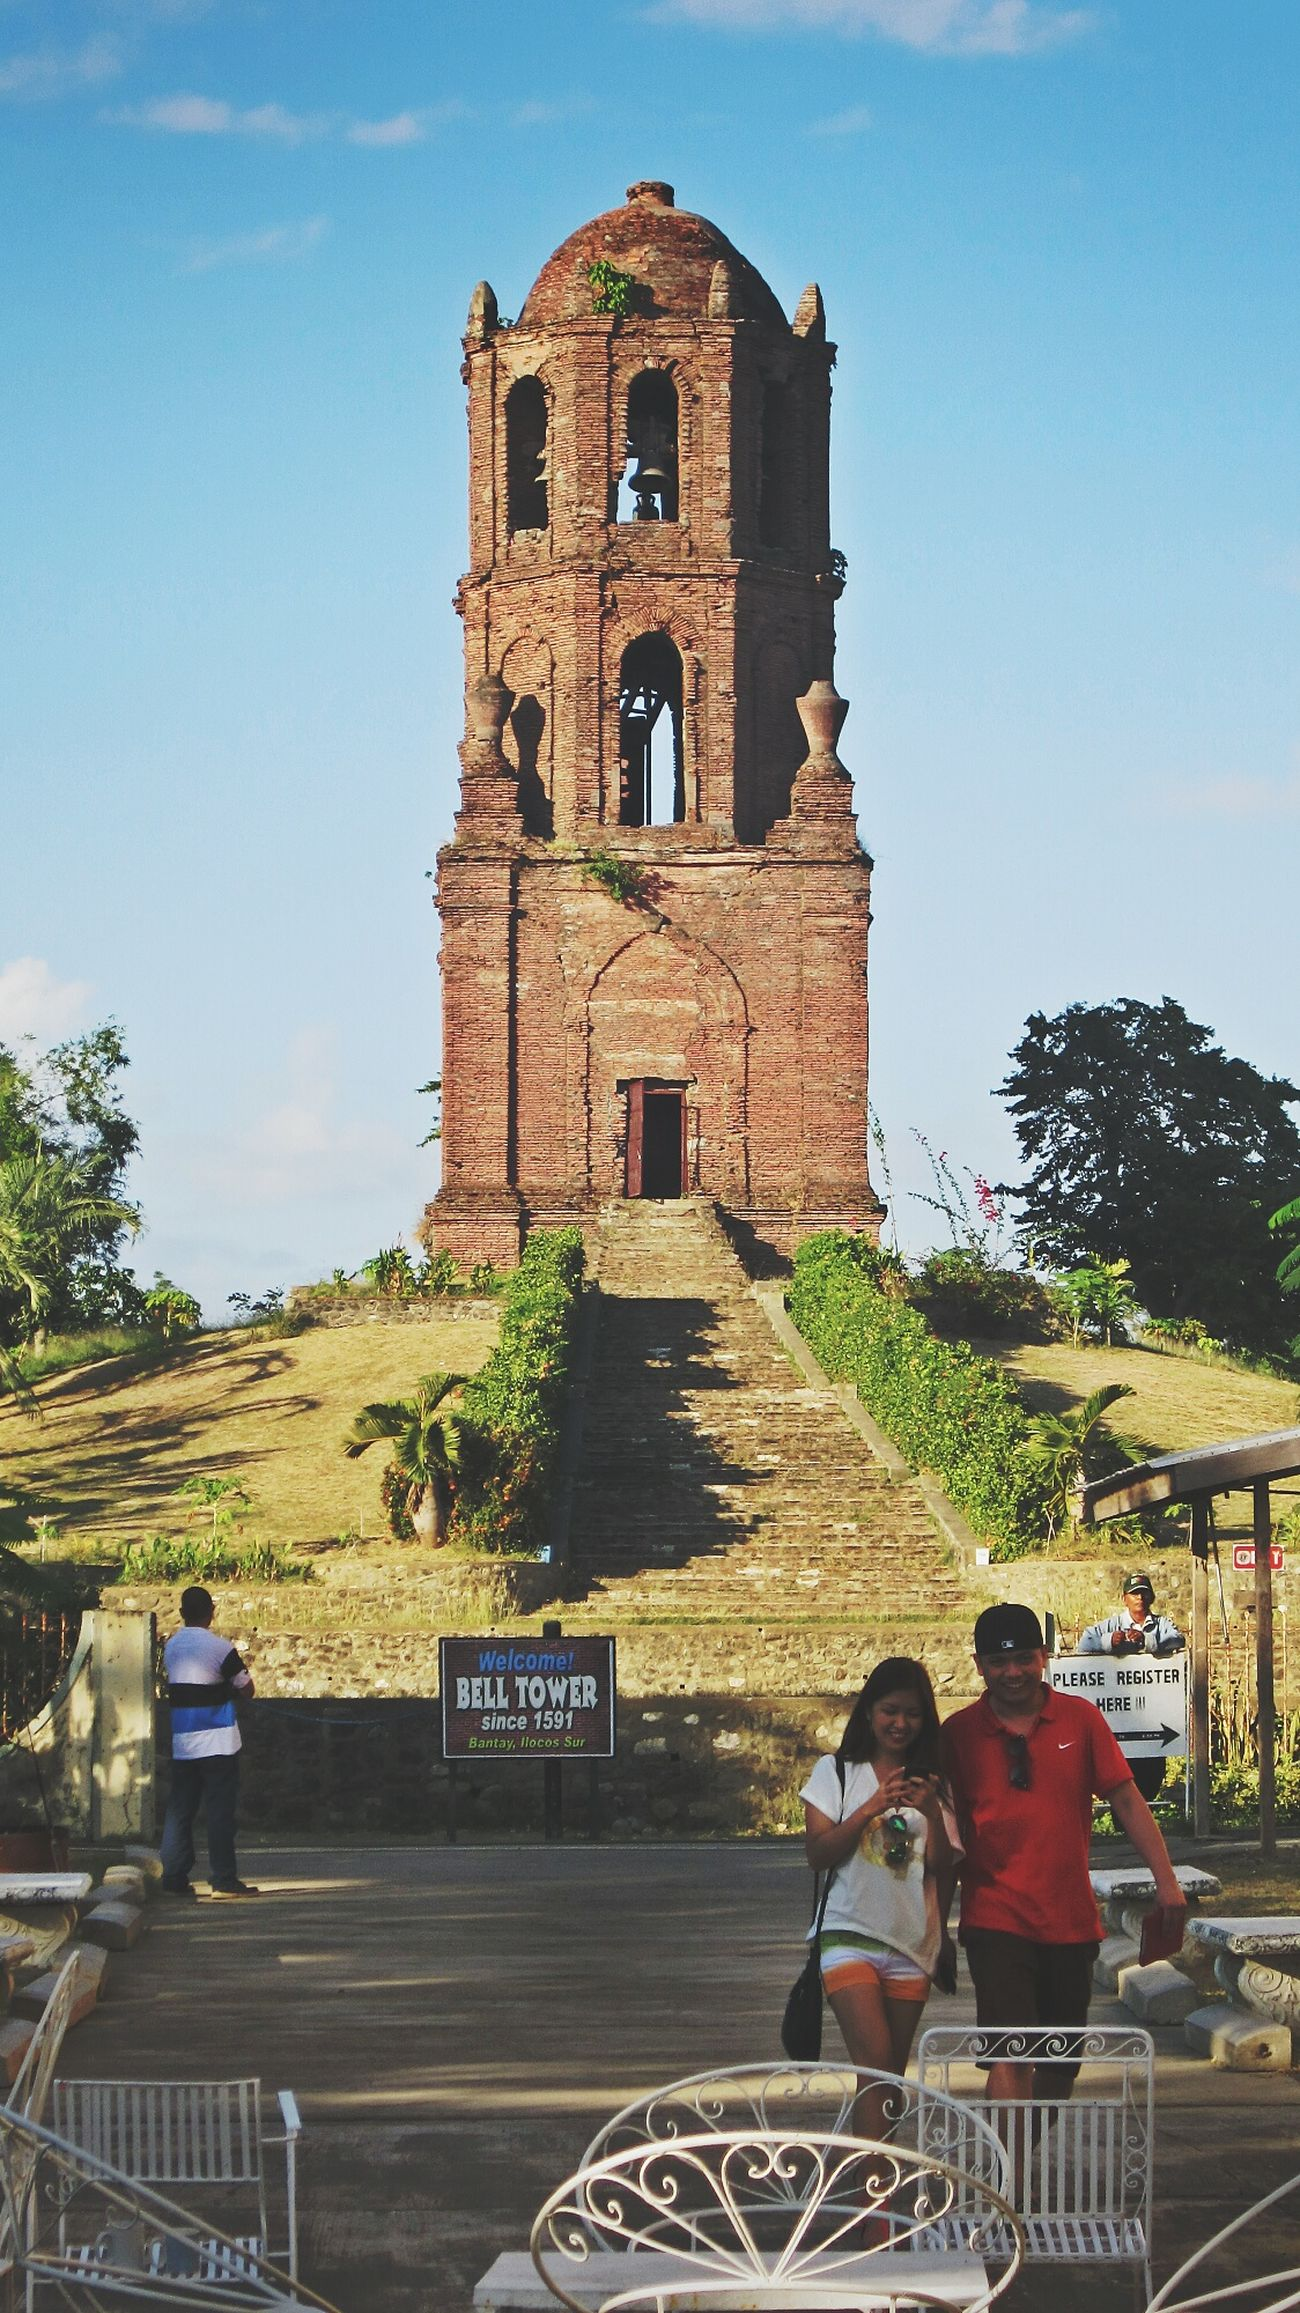 Travel Photography Travel Bantay Ilocos Sur Philippines Belfry Belltower Old